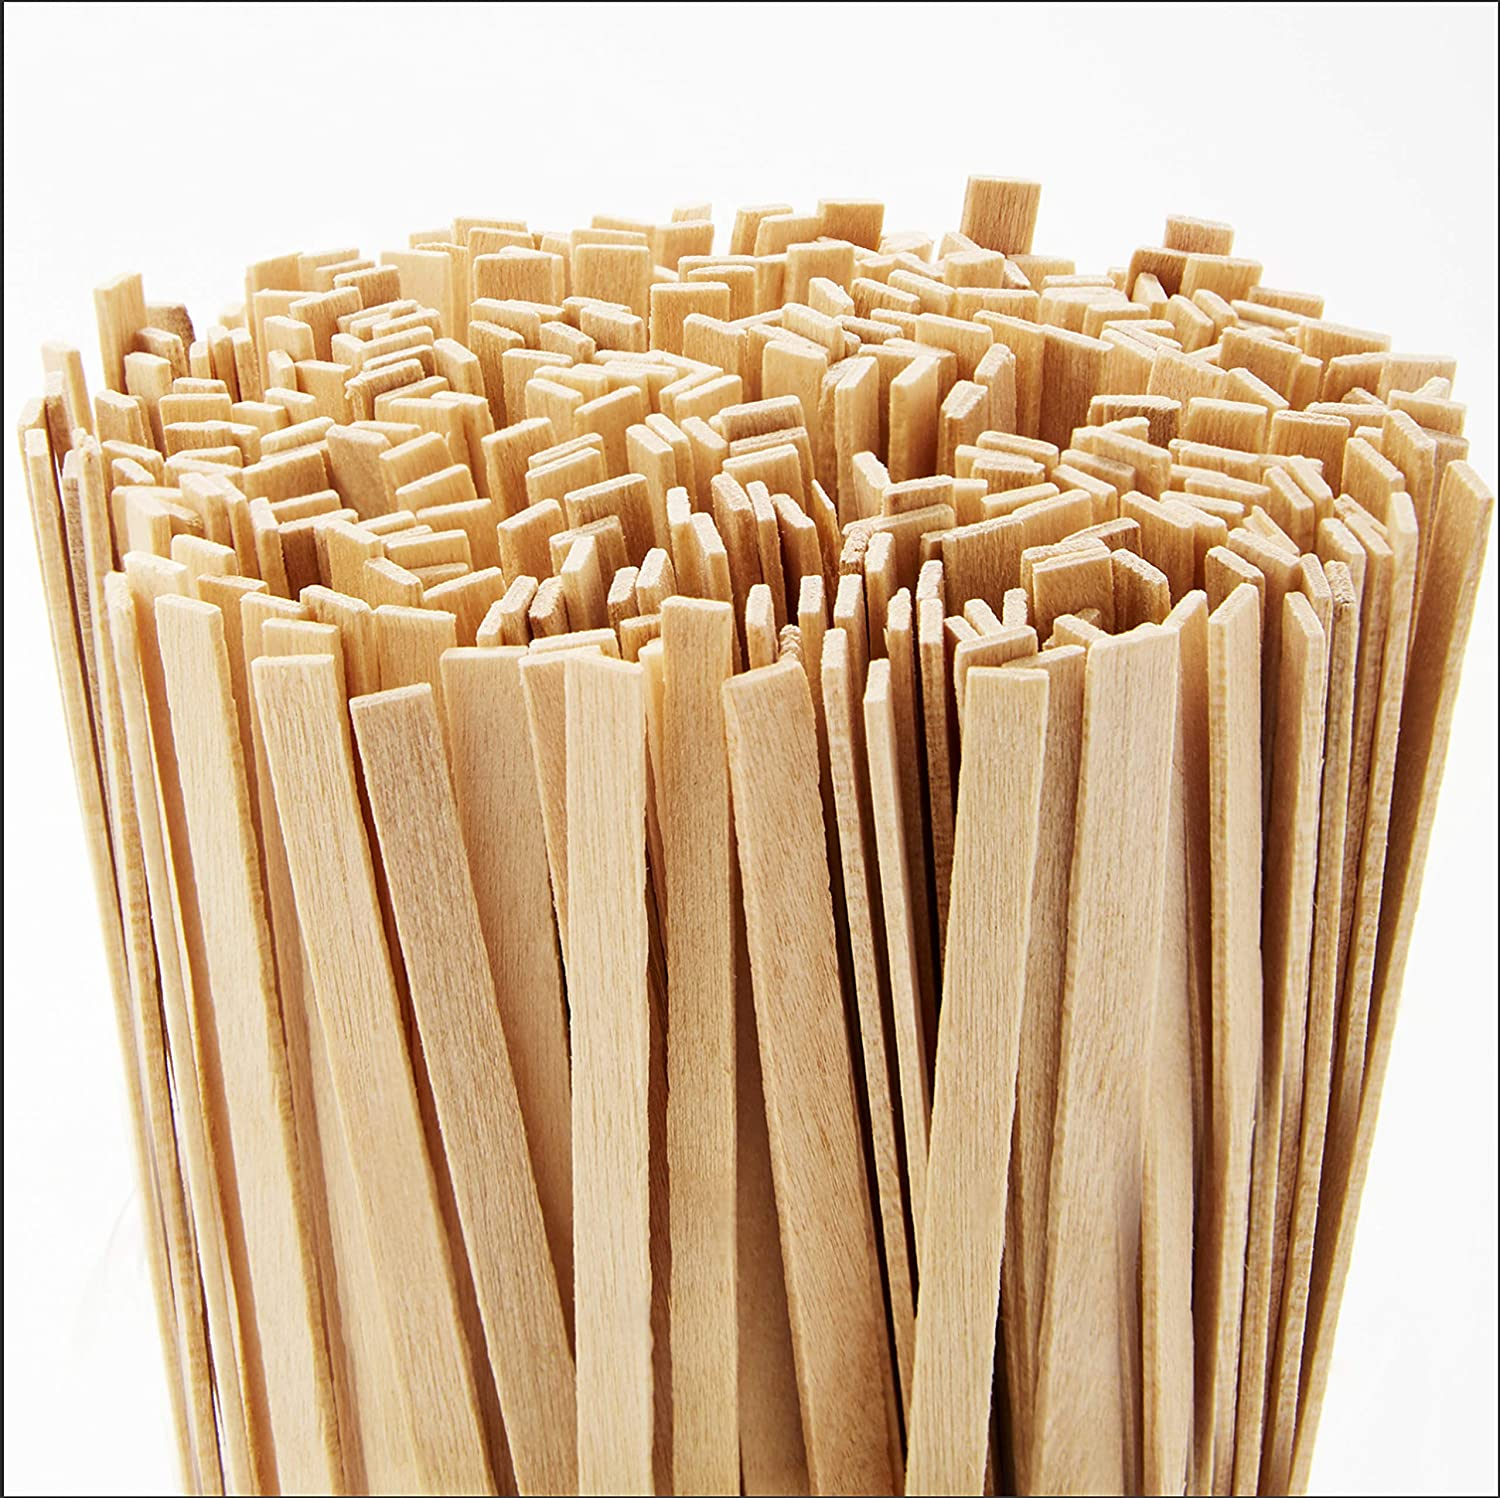 Cafe Grade, Biodegradable Wood Coffee Stirrer 2000 Ct, 5.5 In. Bulk Birch Wooden Beverage Stirring Stick for Tea, Cream or Sugar. Best Eco Friendly, Compostable Swizzle Stir Sticks Business Supplies